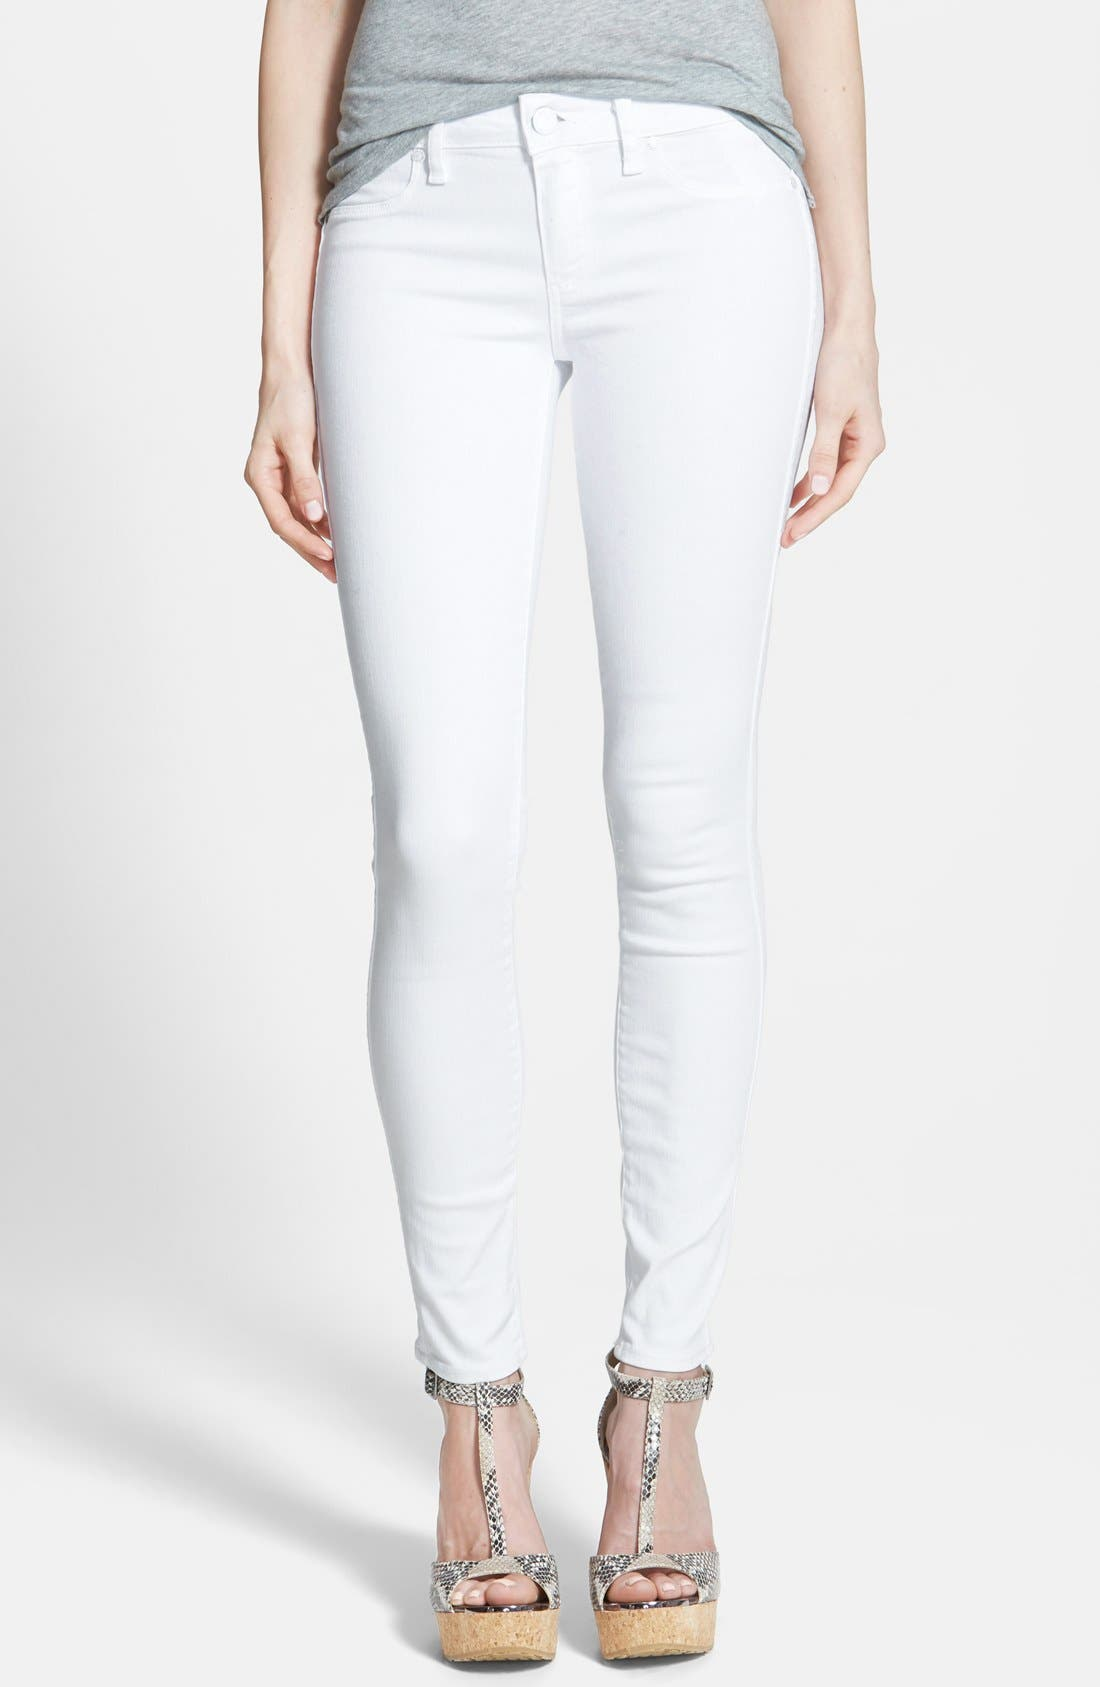 Alternate Image 1 Selected - PAIGE 'Verdugo' Ultra Skinny Jeans (Ultra White)